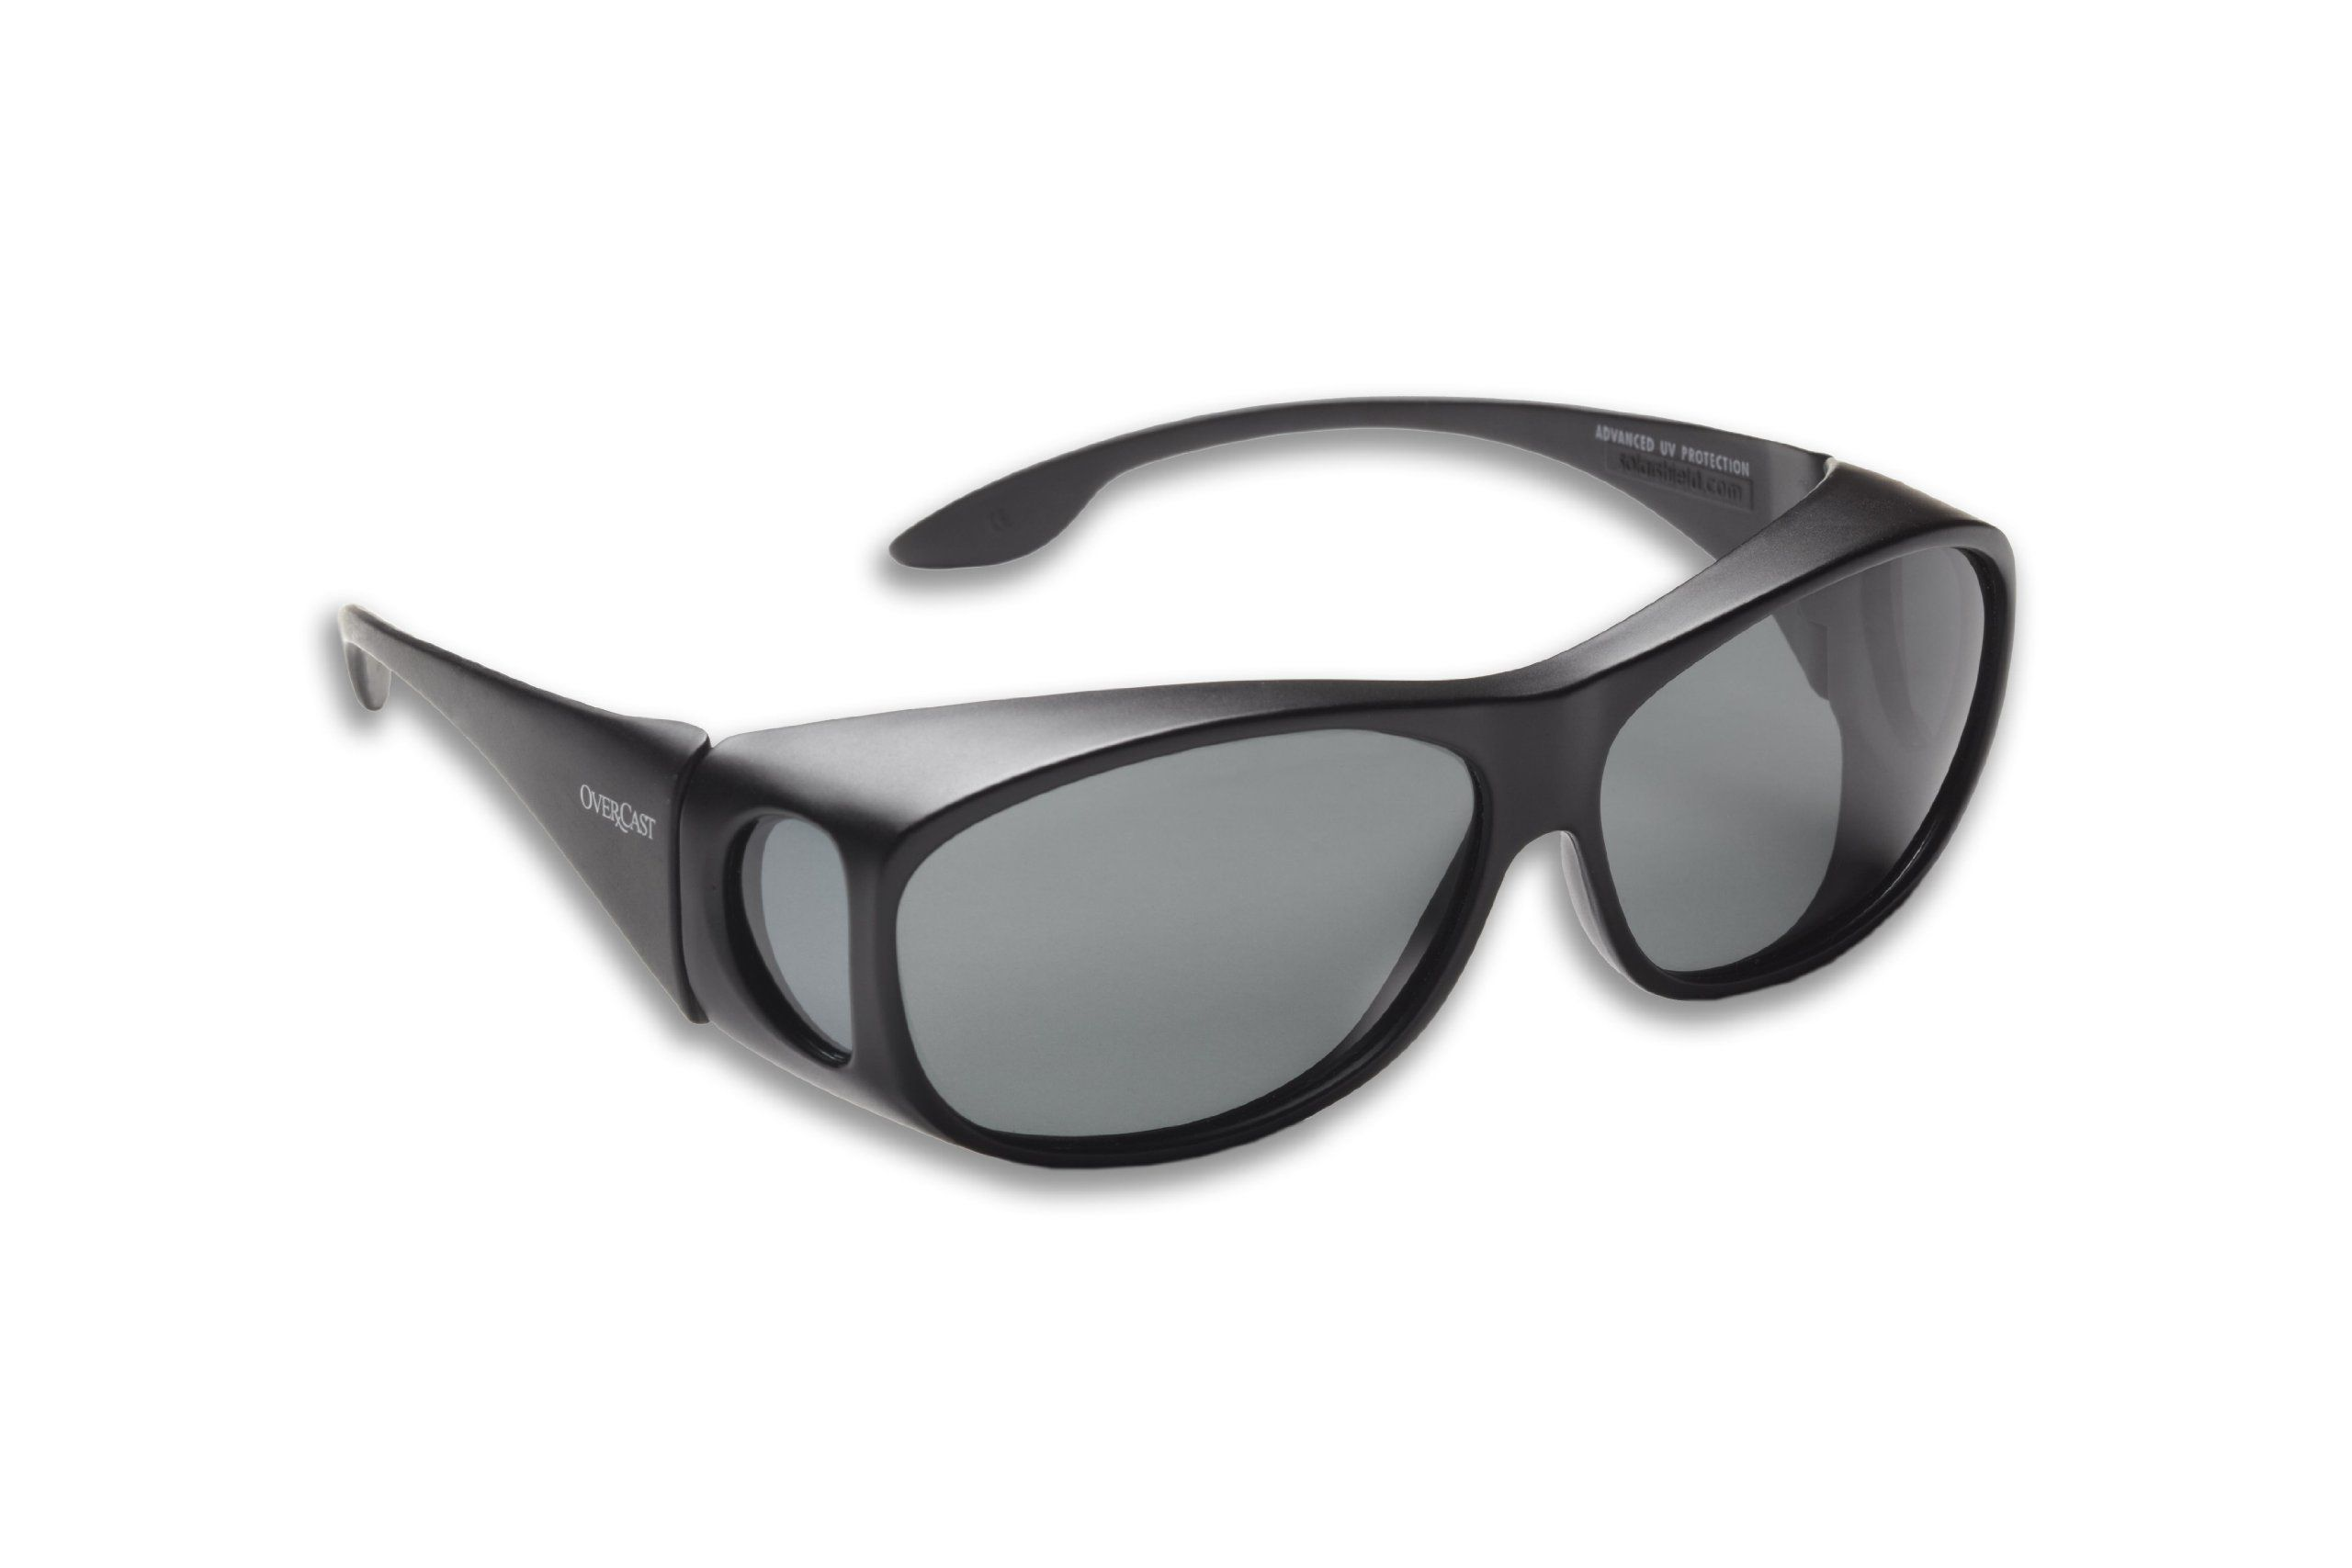 Fisherman Eyewear Overxcast - Designed for Over-Prescription Medium ...